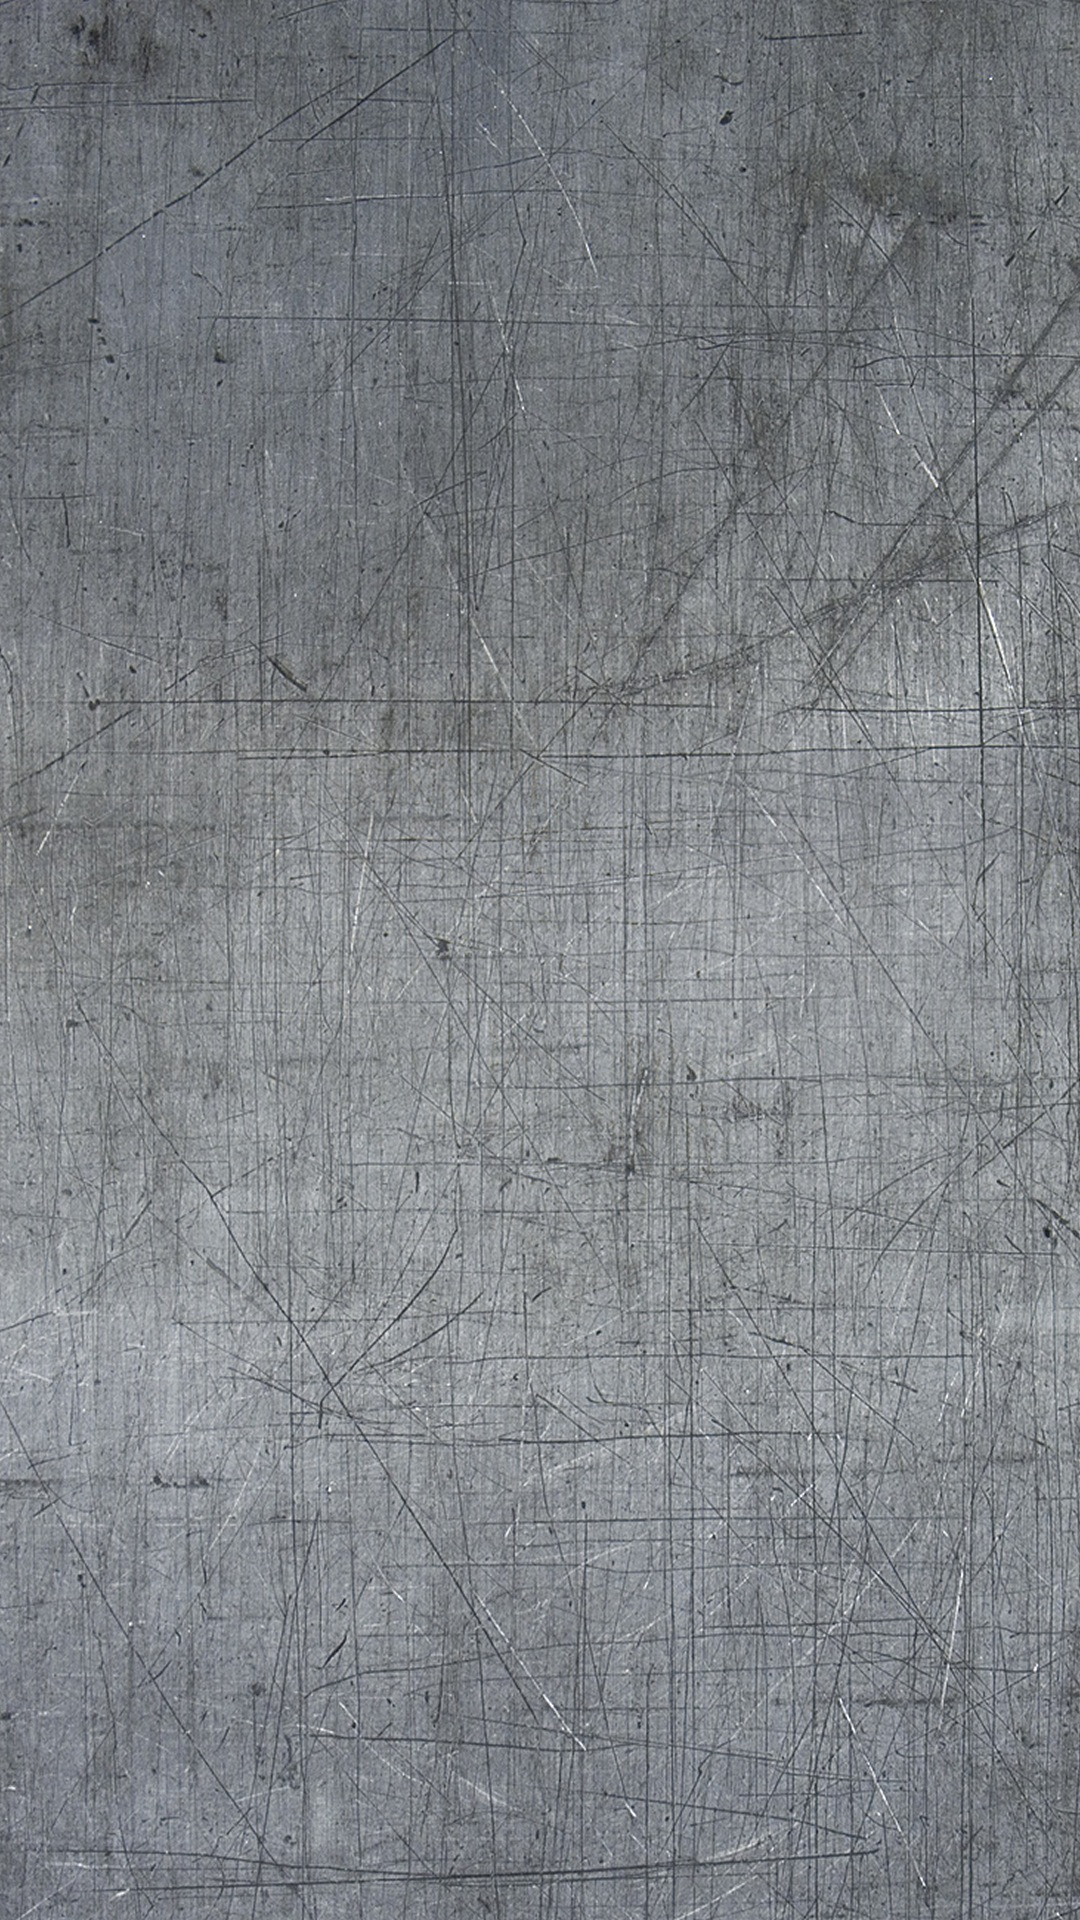 Scratched Metal Surface Texture